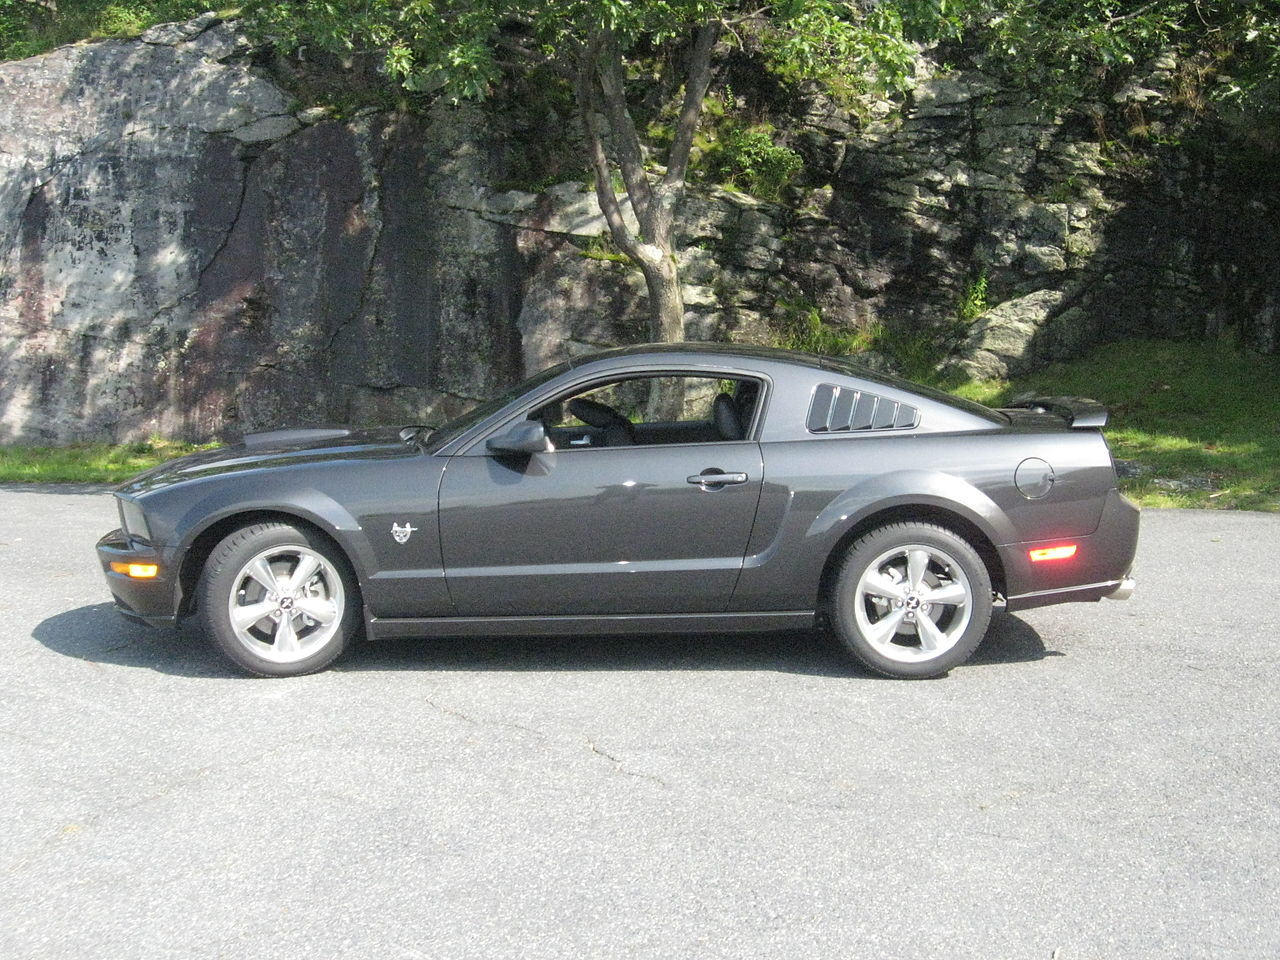 All Types 2006 mustang gt specs : File:2009 Ford Mustang GT 45th Side.JPG - Wikimedia Commons